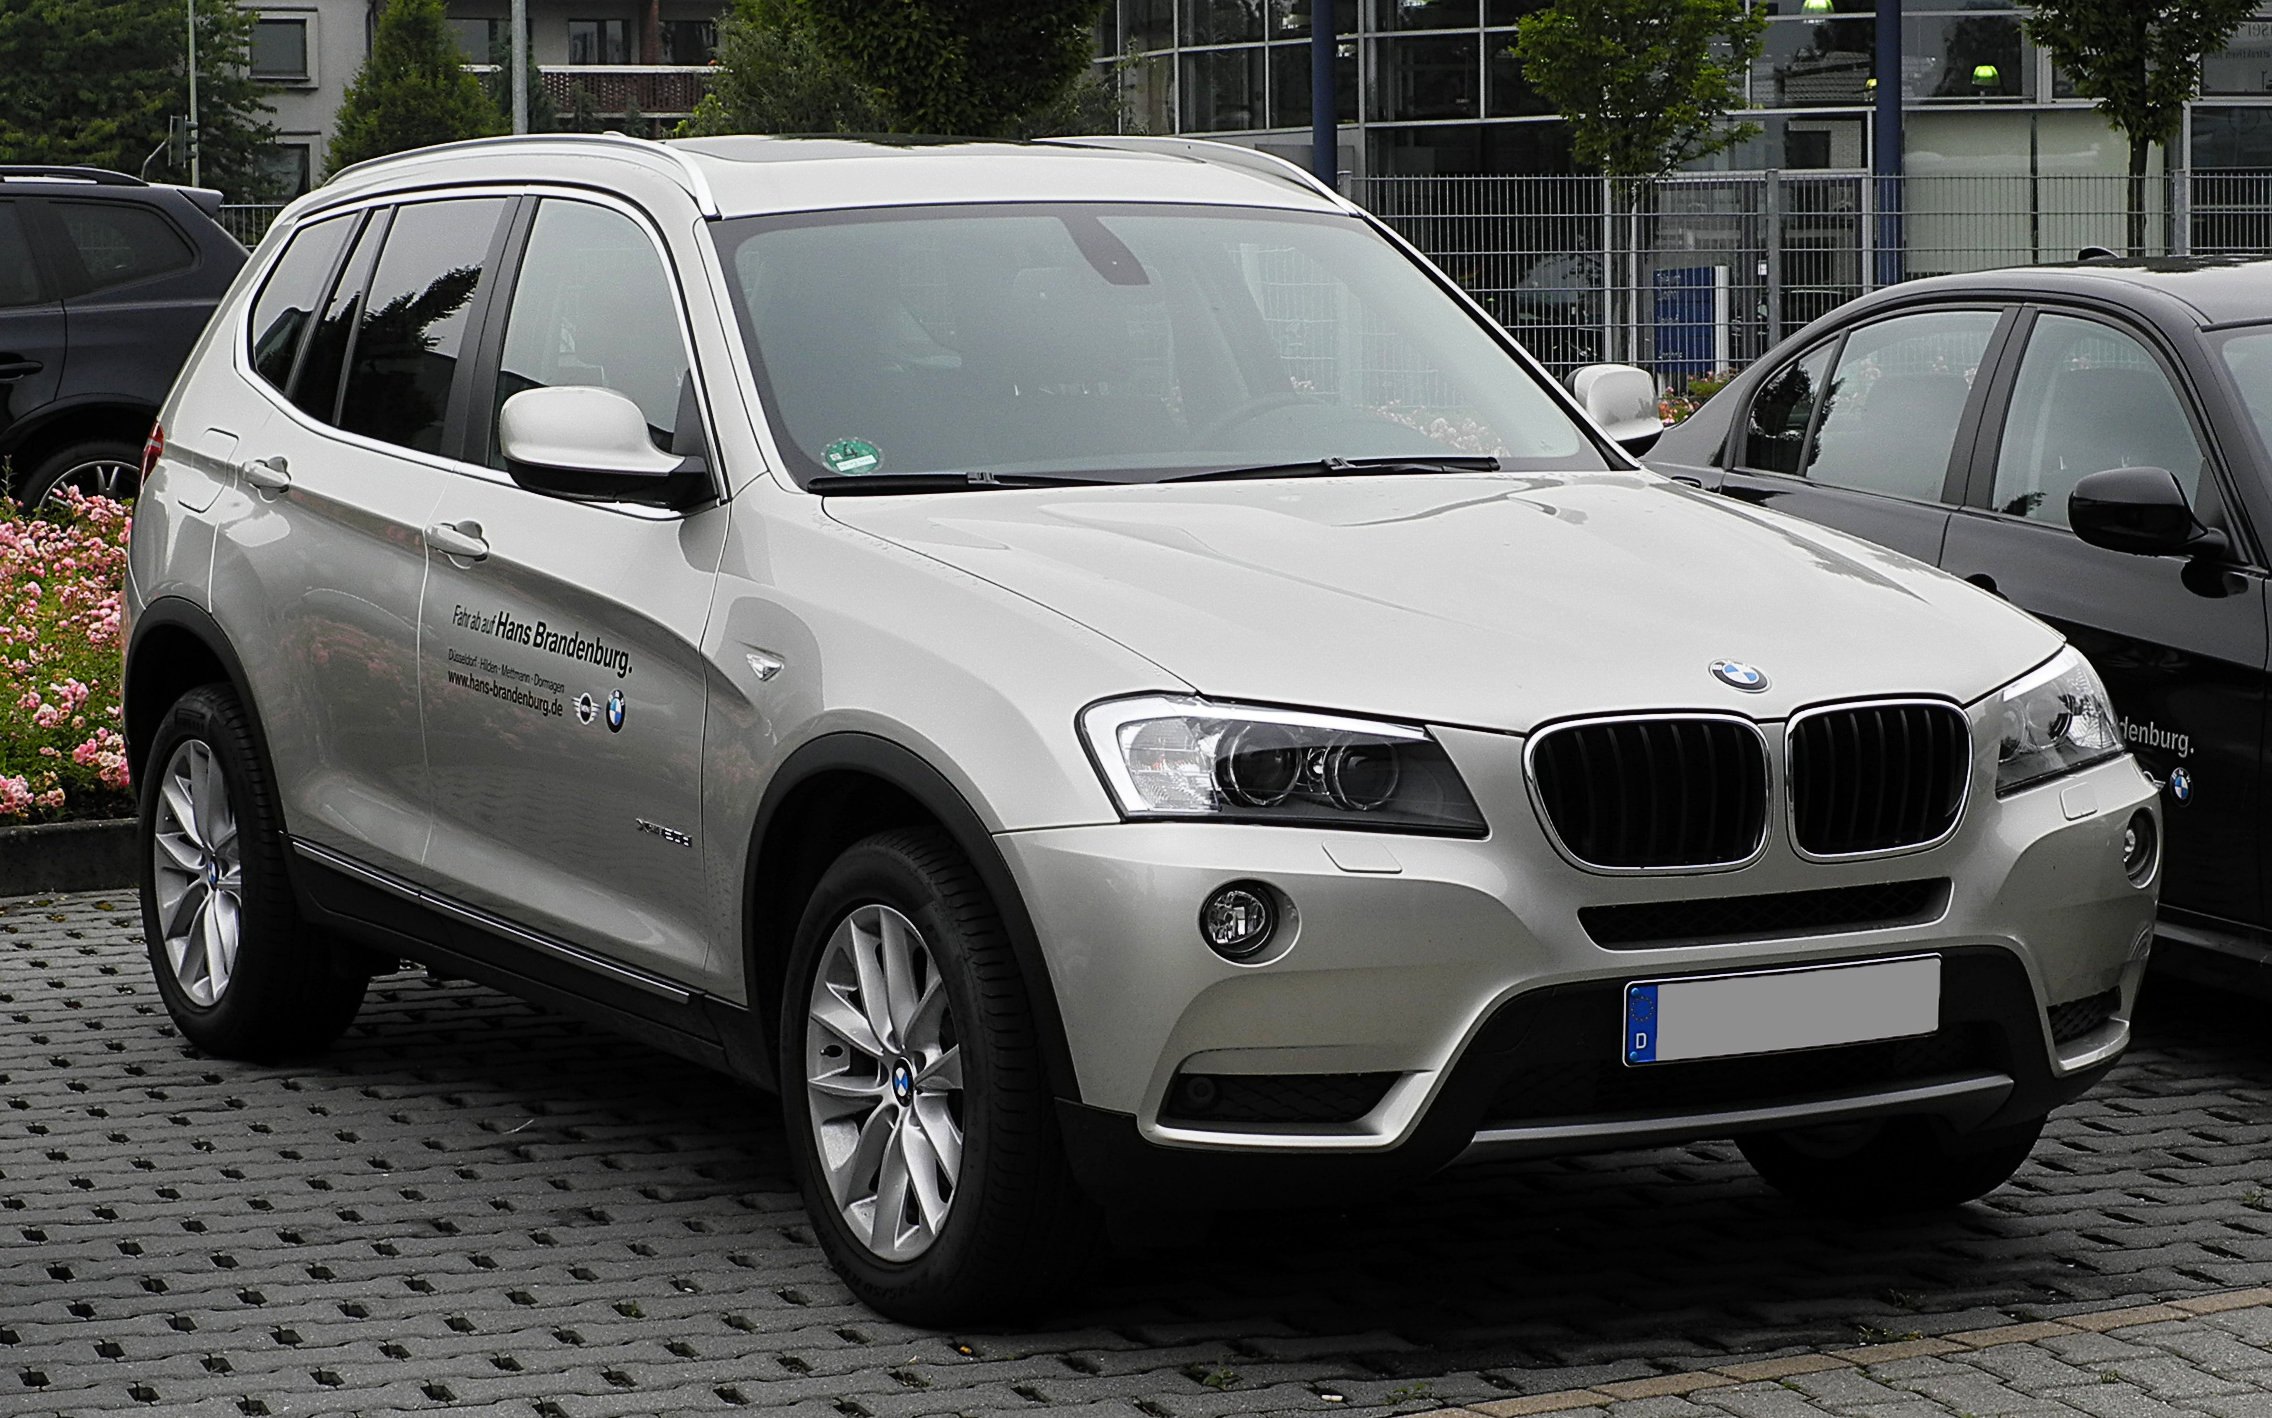 file bmw x3 xdrive20d f25 frontansicht 26 juni 2011 wikimedia commons. Black Bedroom Furniture Sets. Home Design Ideas